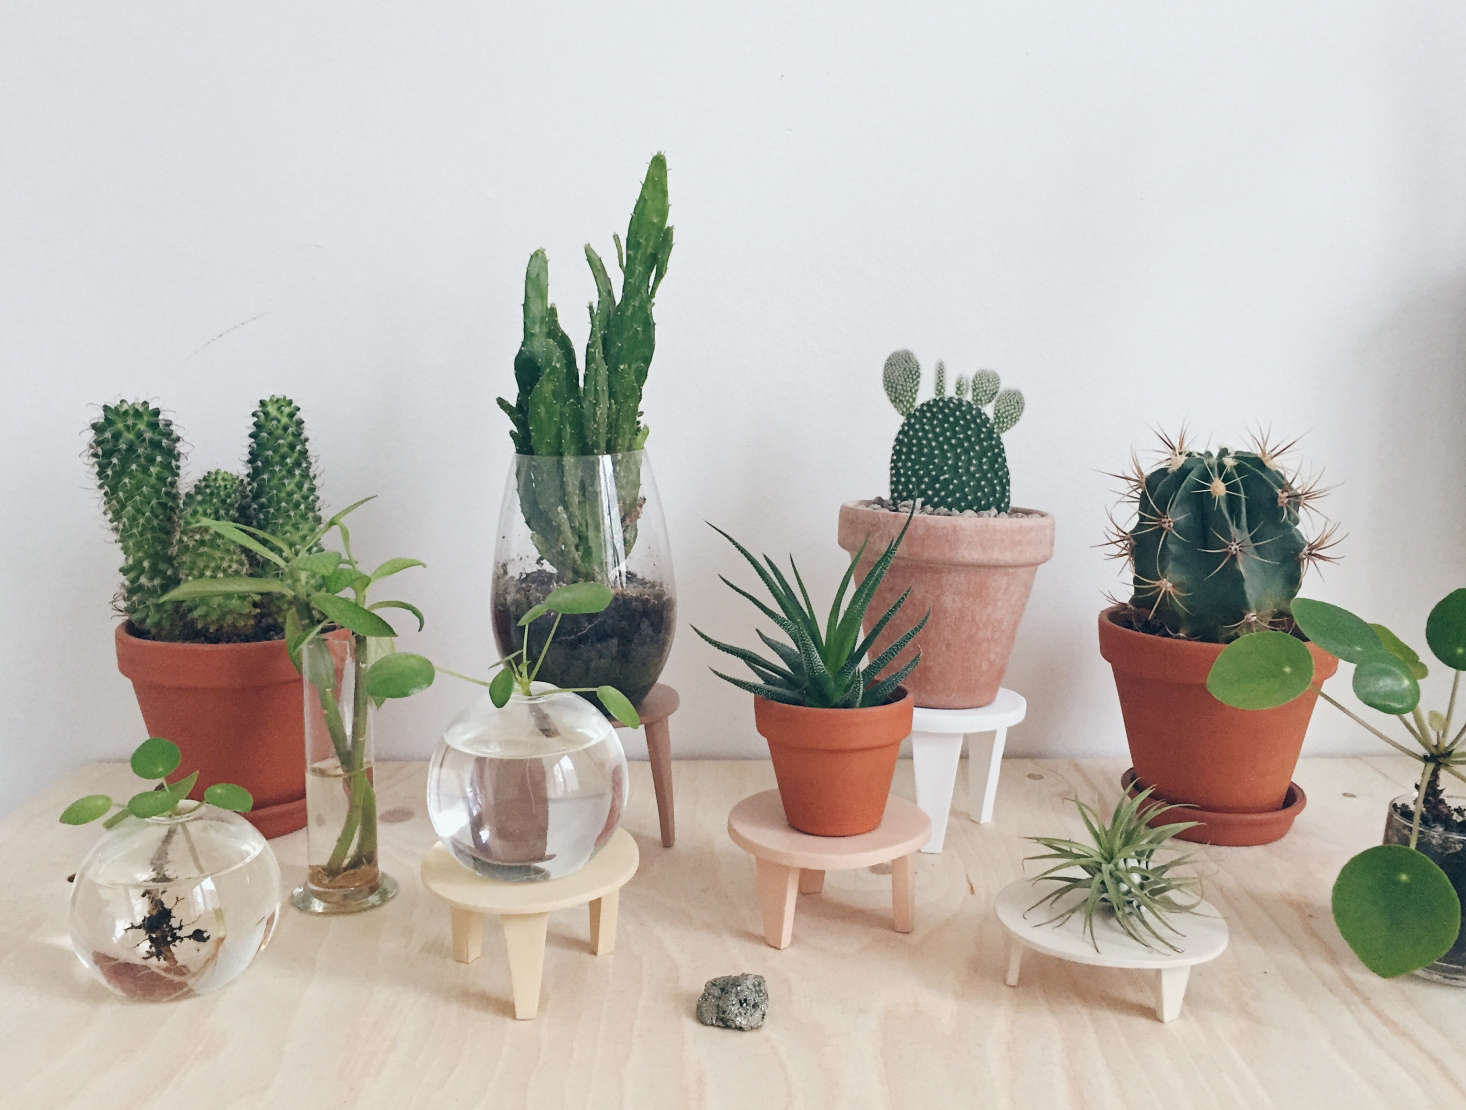 To vary the heights of her potted plants, Maria fashioned &#8